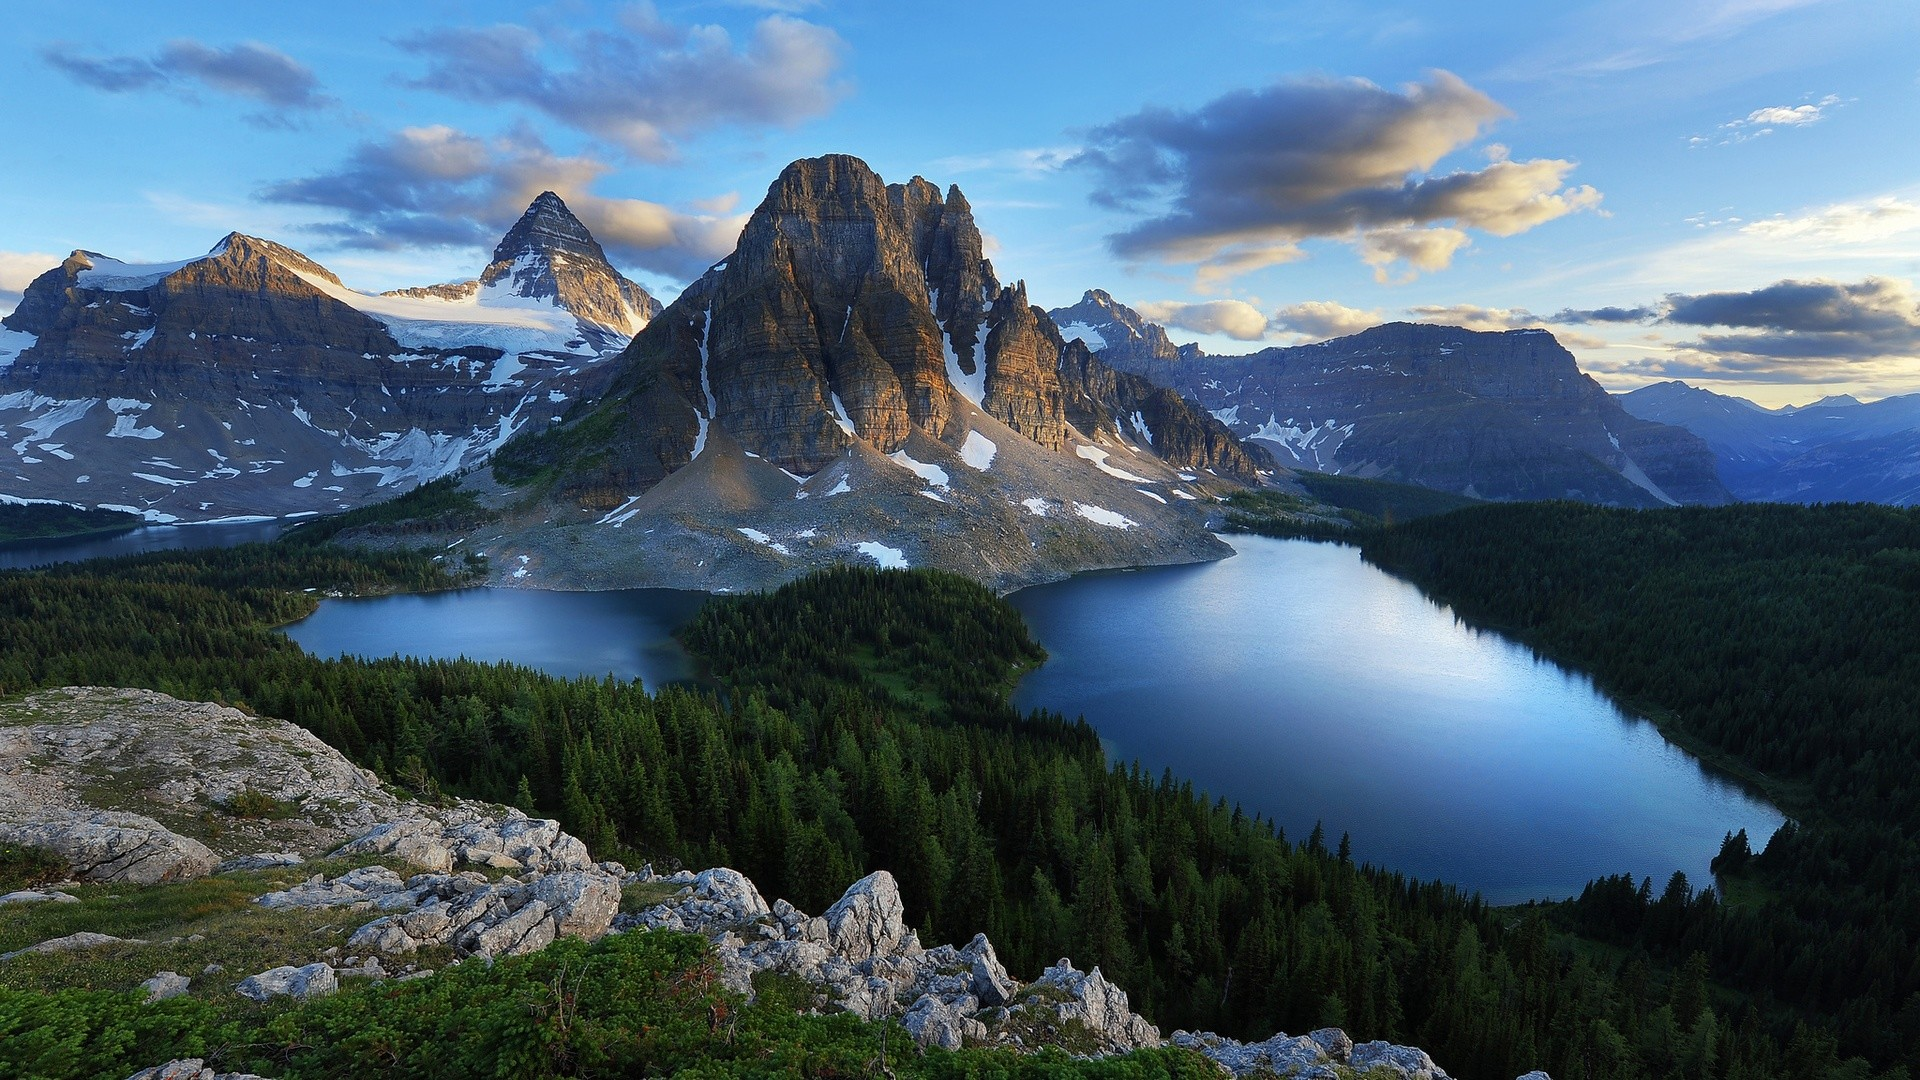 HD Wallpaper Mountain and Lakes We would like travel here, until  we can afford